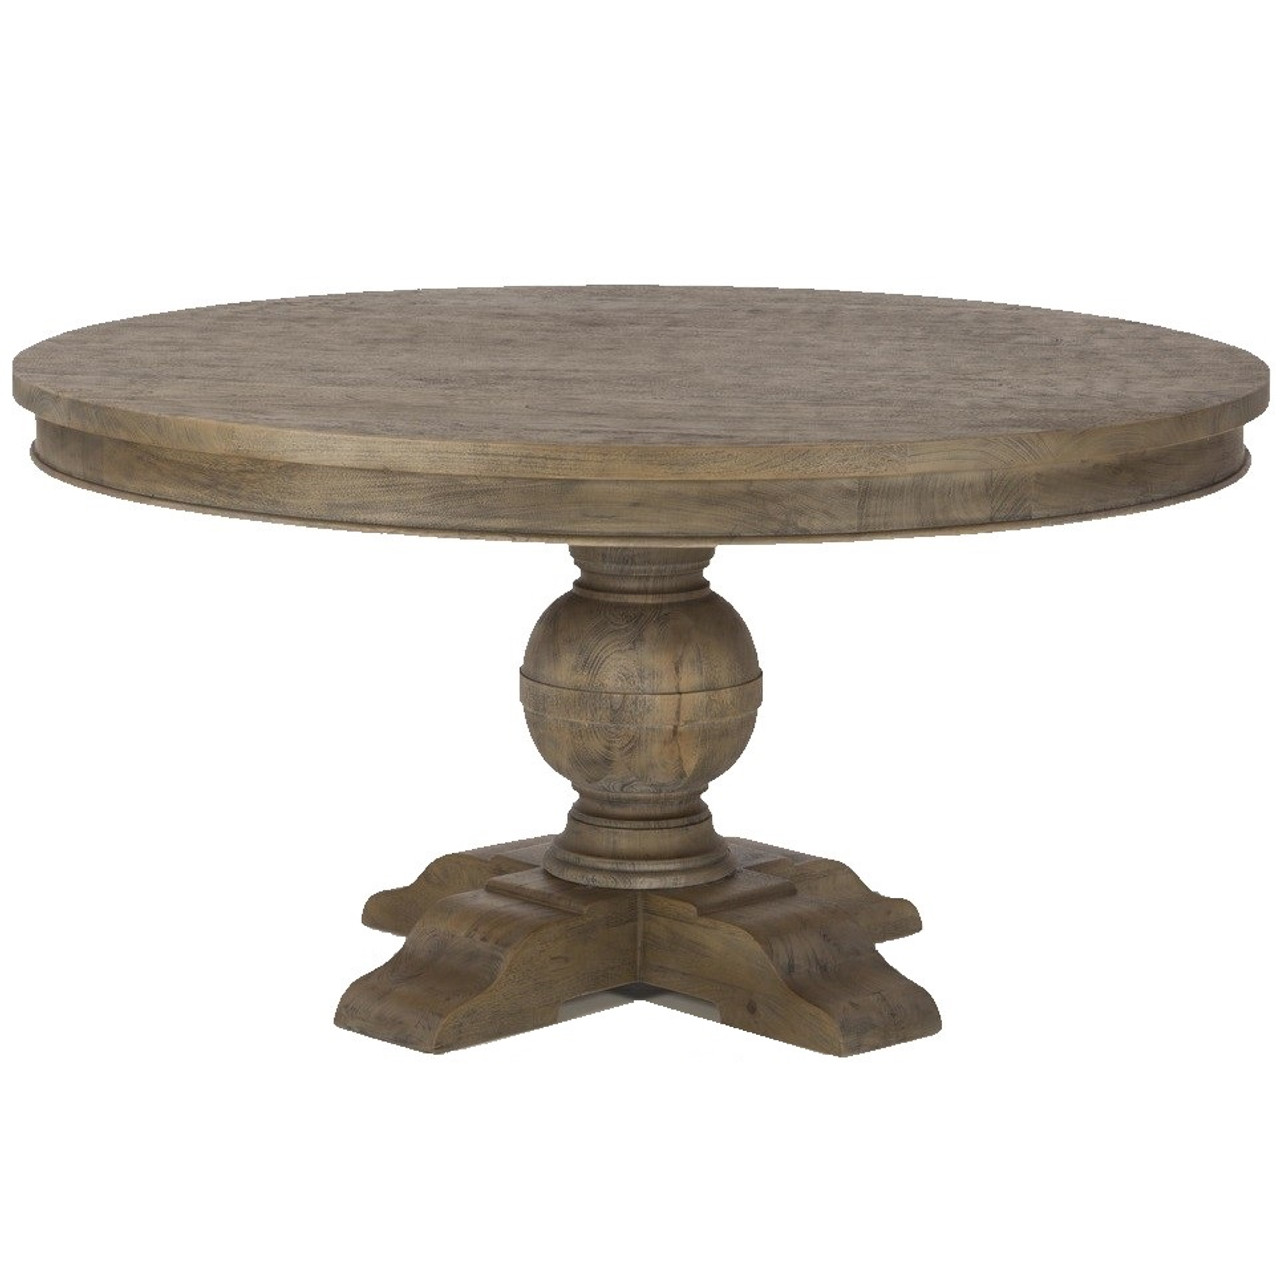 French Urn Solid Wood Pedestal Round Dining Table 48\